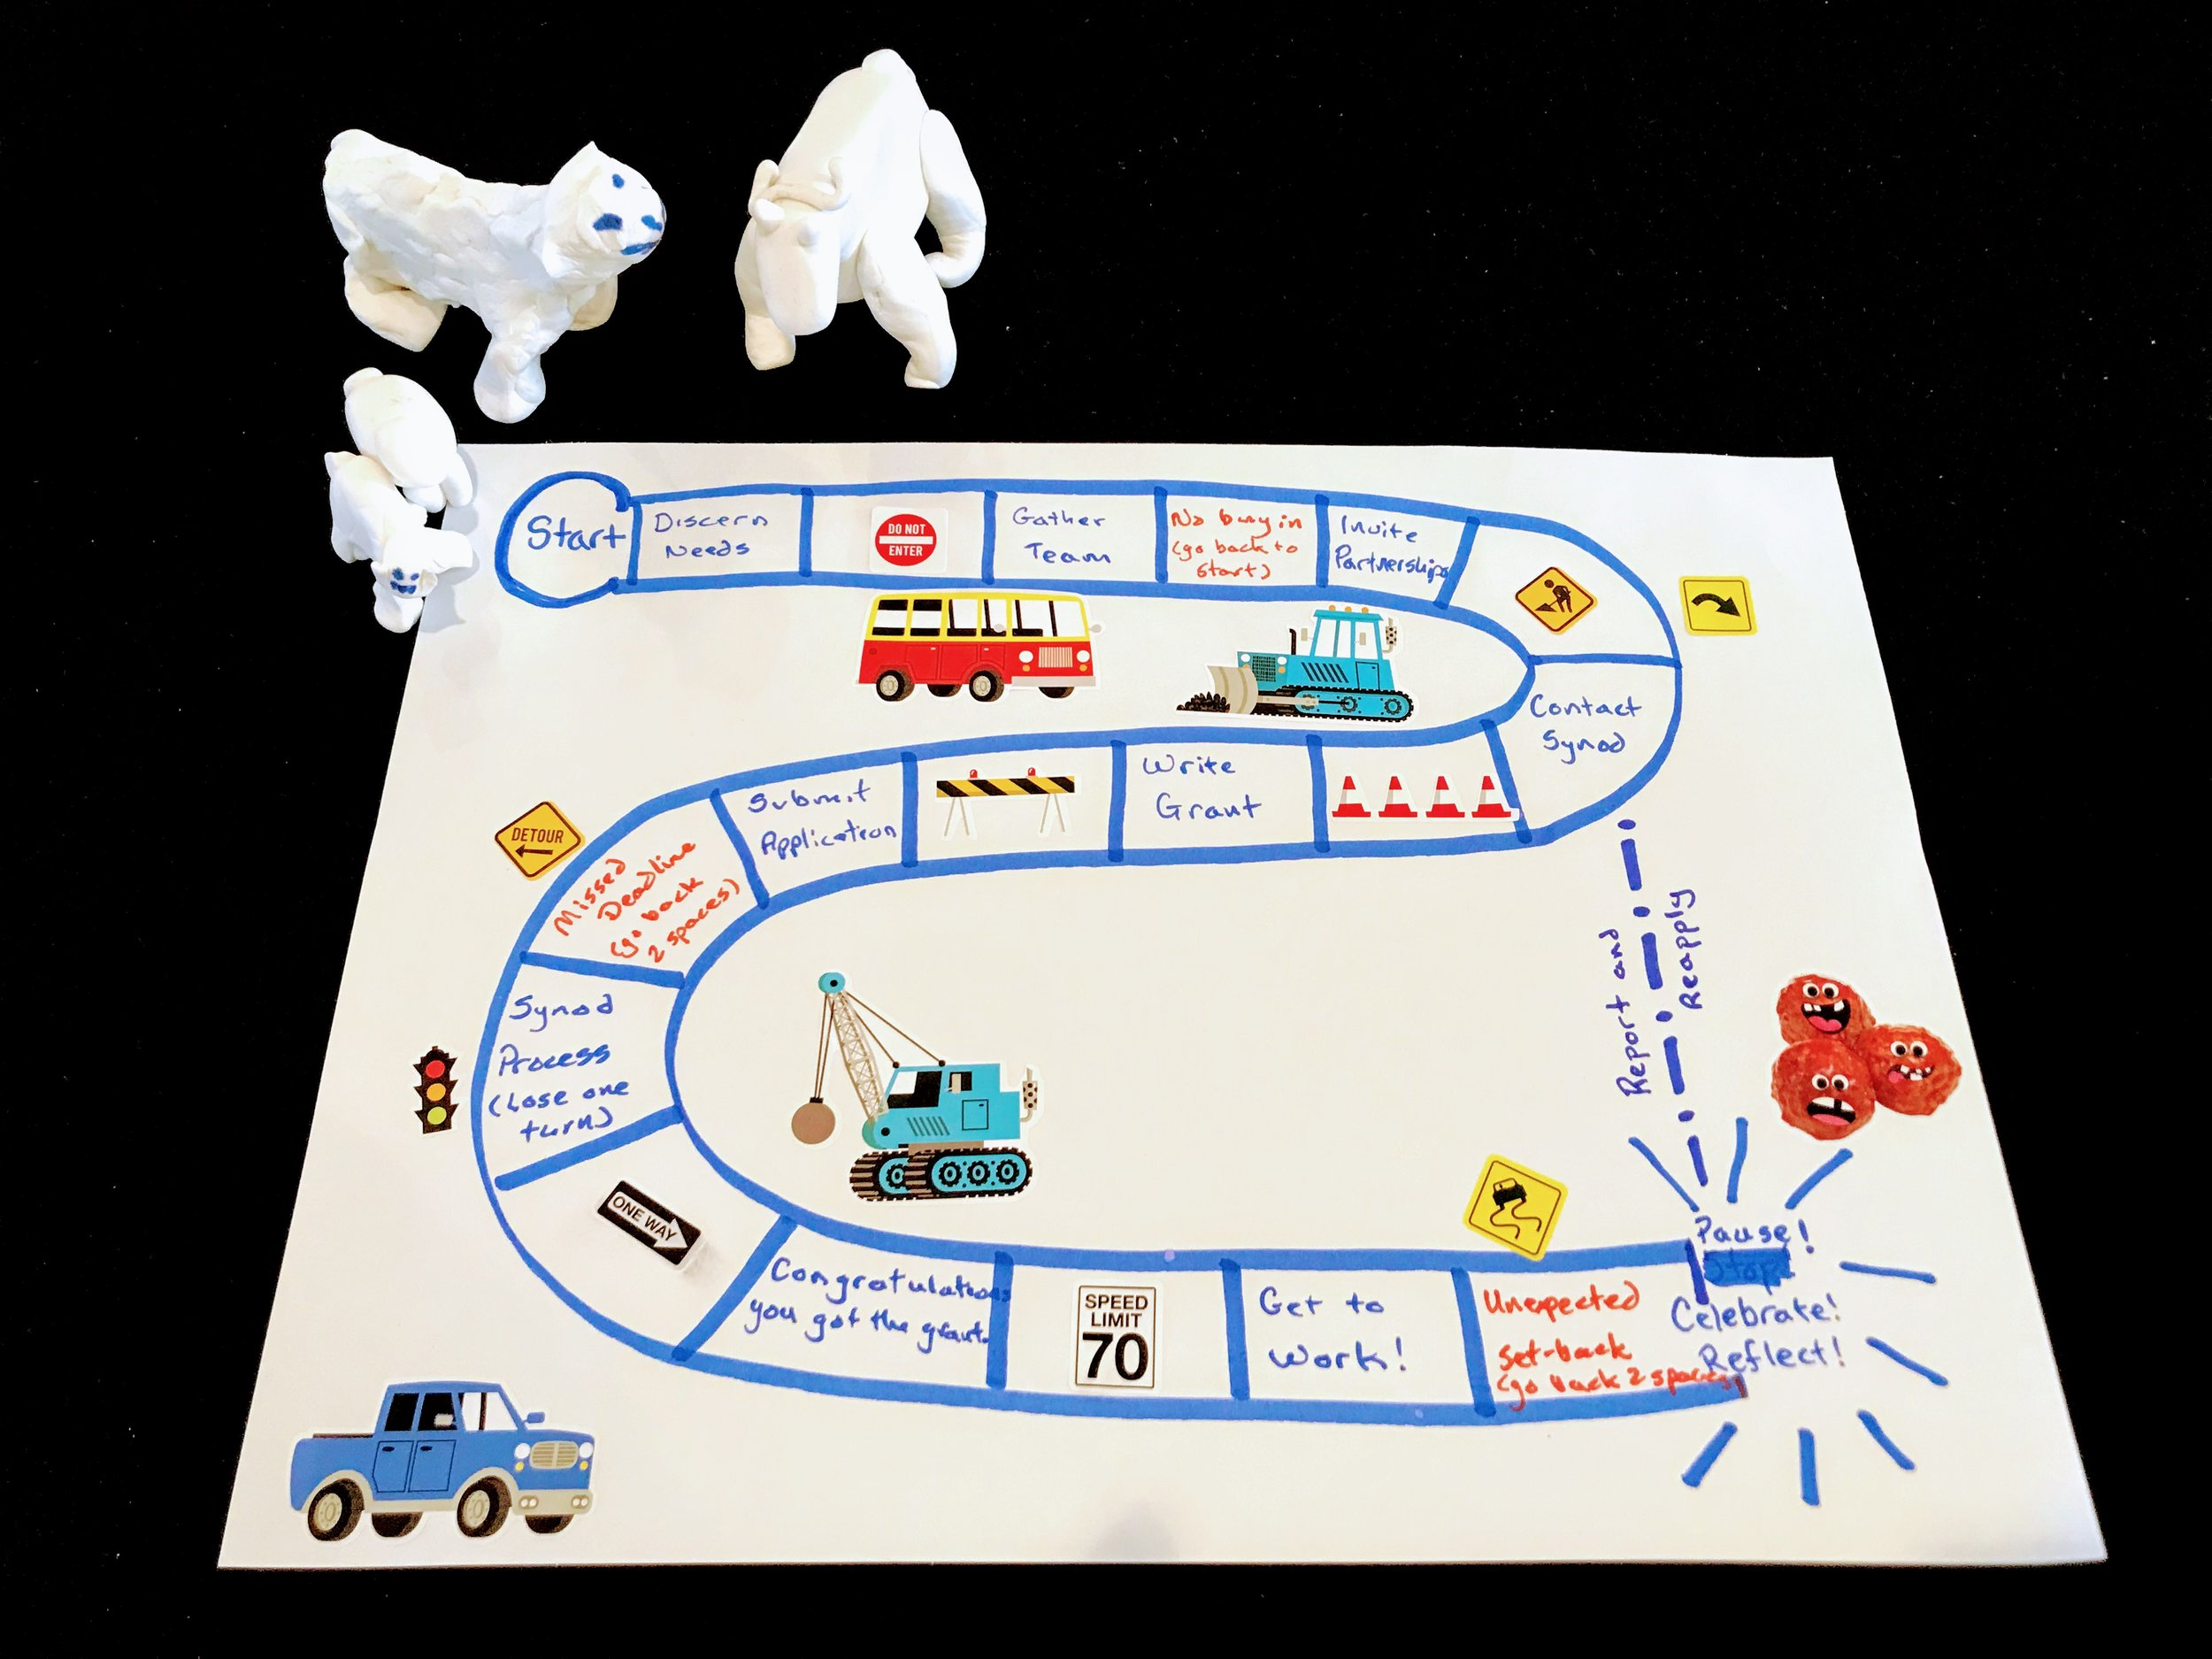 Mission Working Group (the game pieces are sheep and goats…)